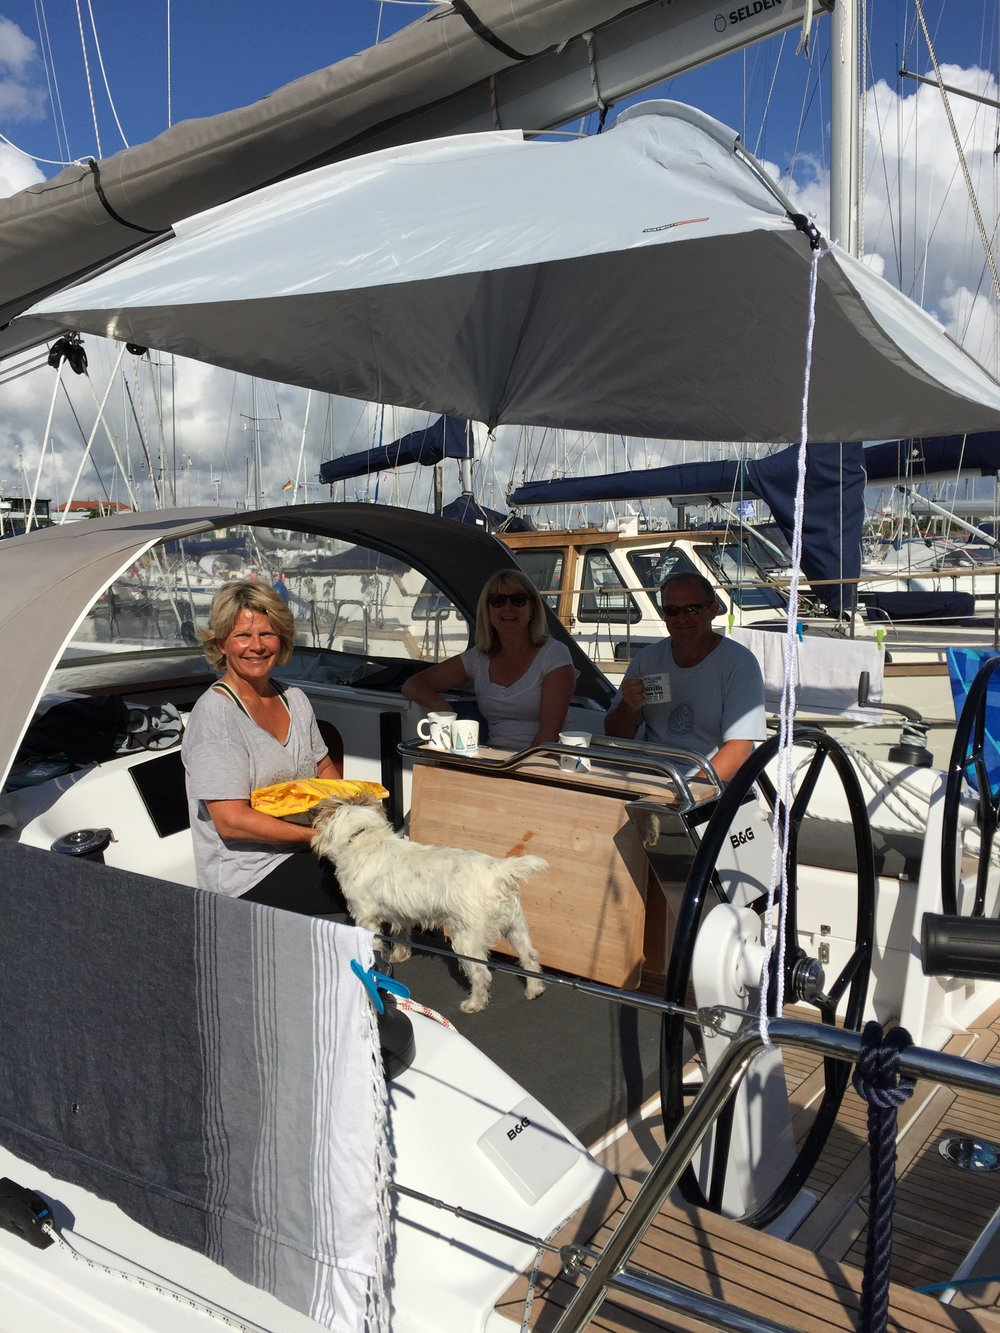 Breakfast in the sun under the new canopy & A Day Boat Cleaning u0026 Fixing u2014 Blue Sky Skippers